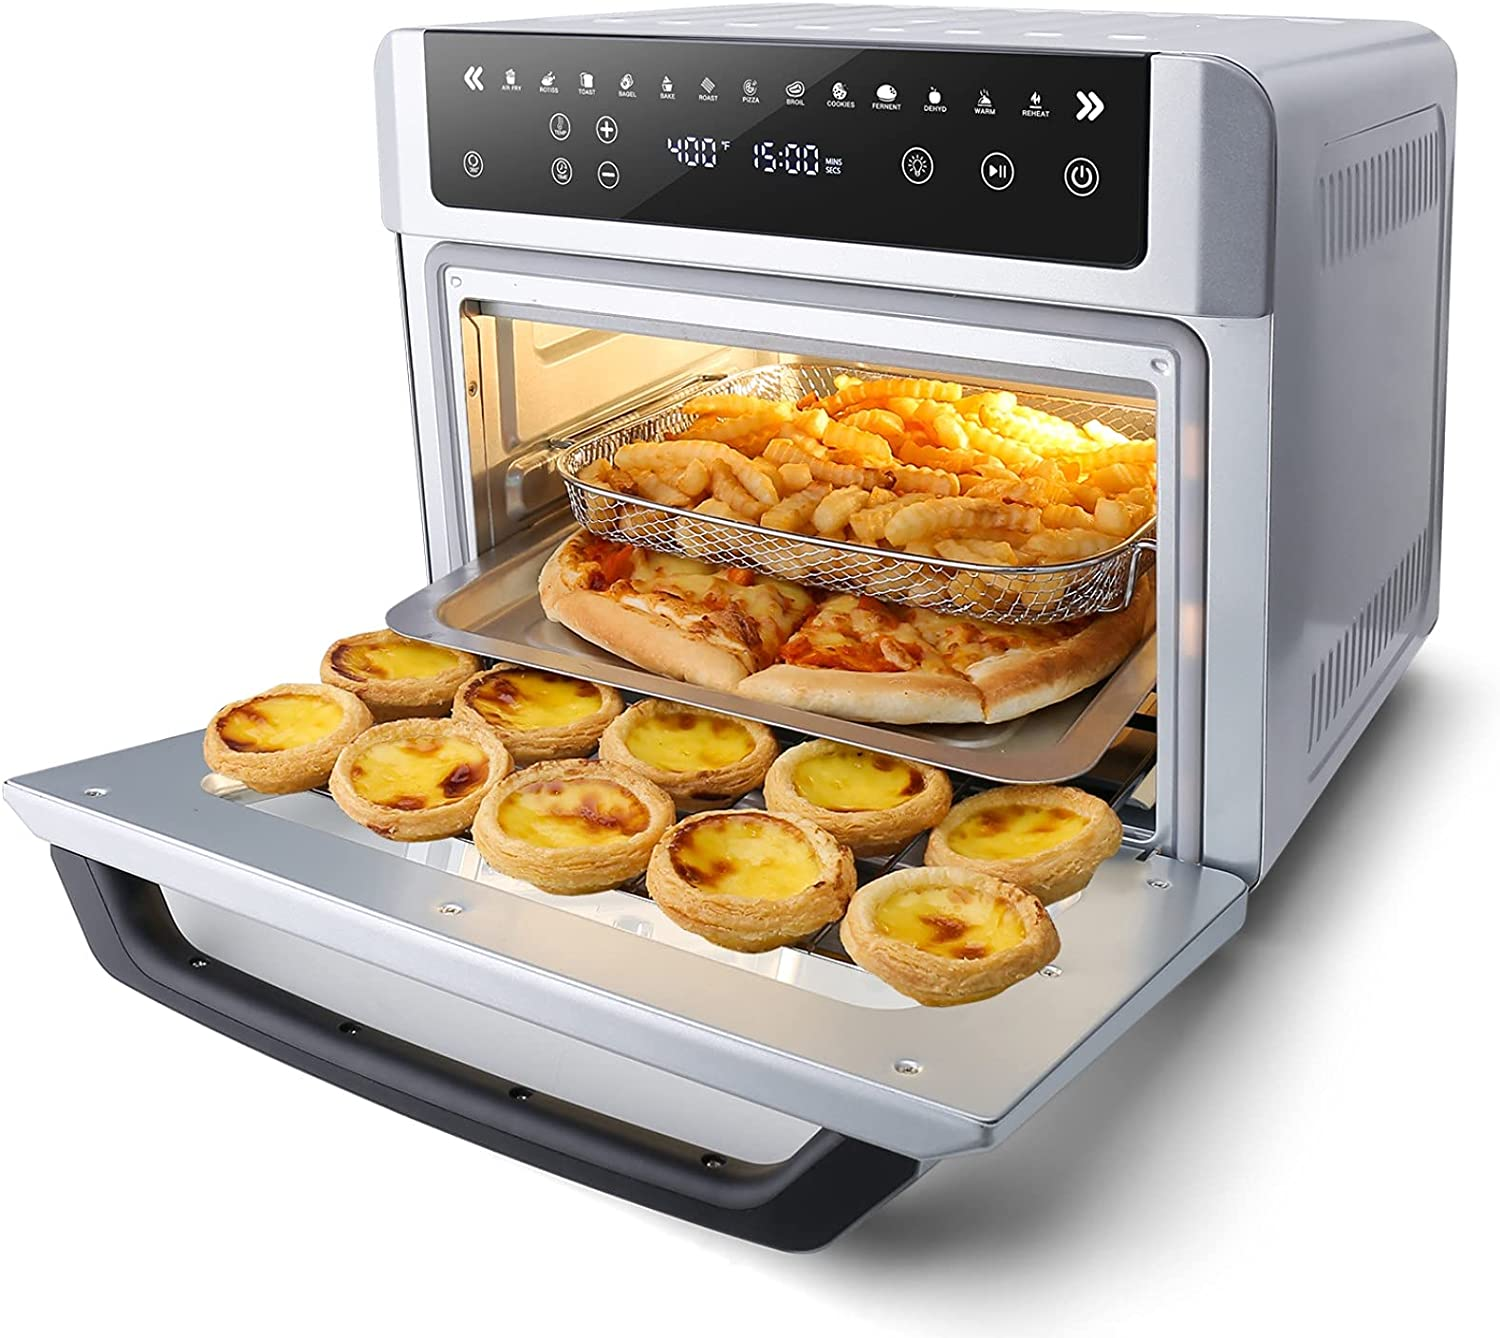 Gevi Air Fryer Toaster Oven Combo Super intense SALE Safety and trust LED Digital Large Conv Screen